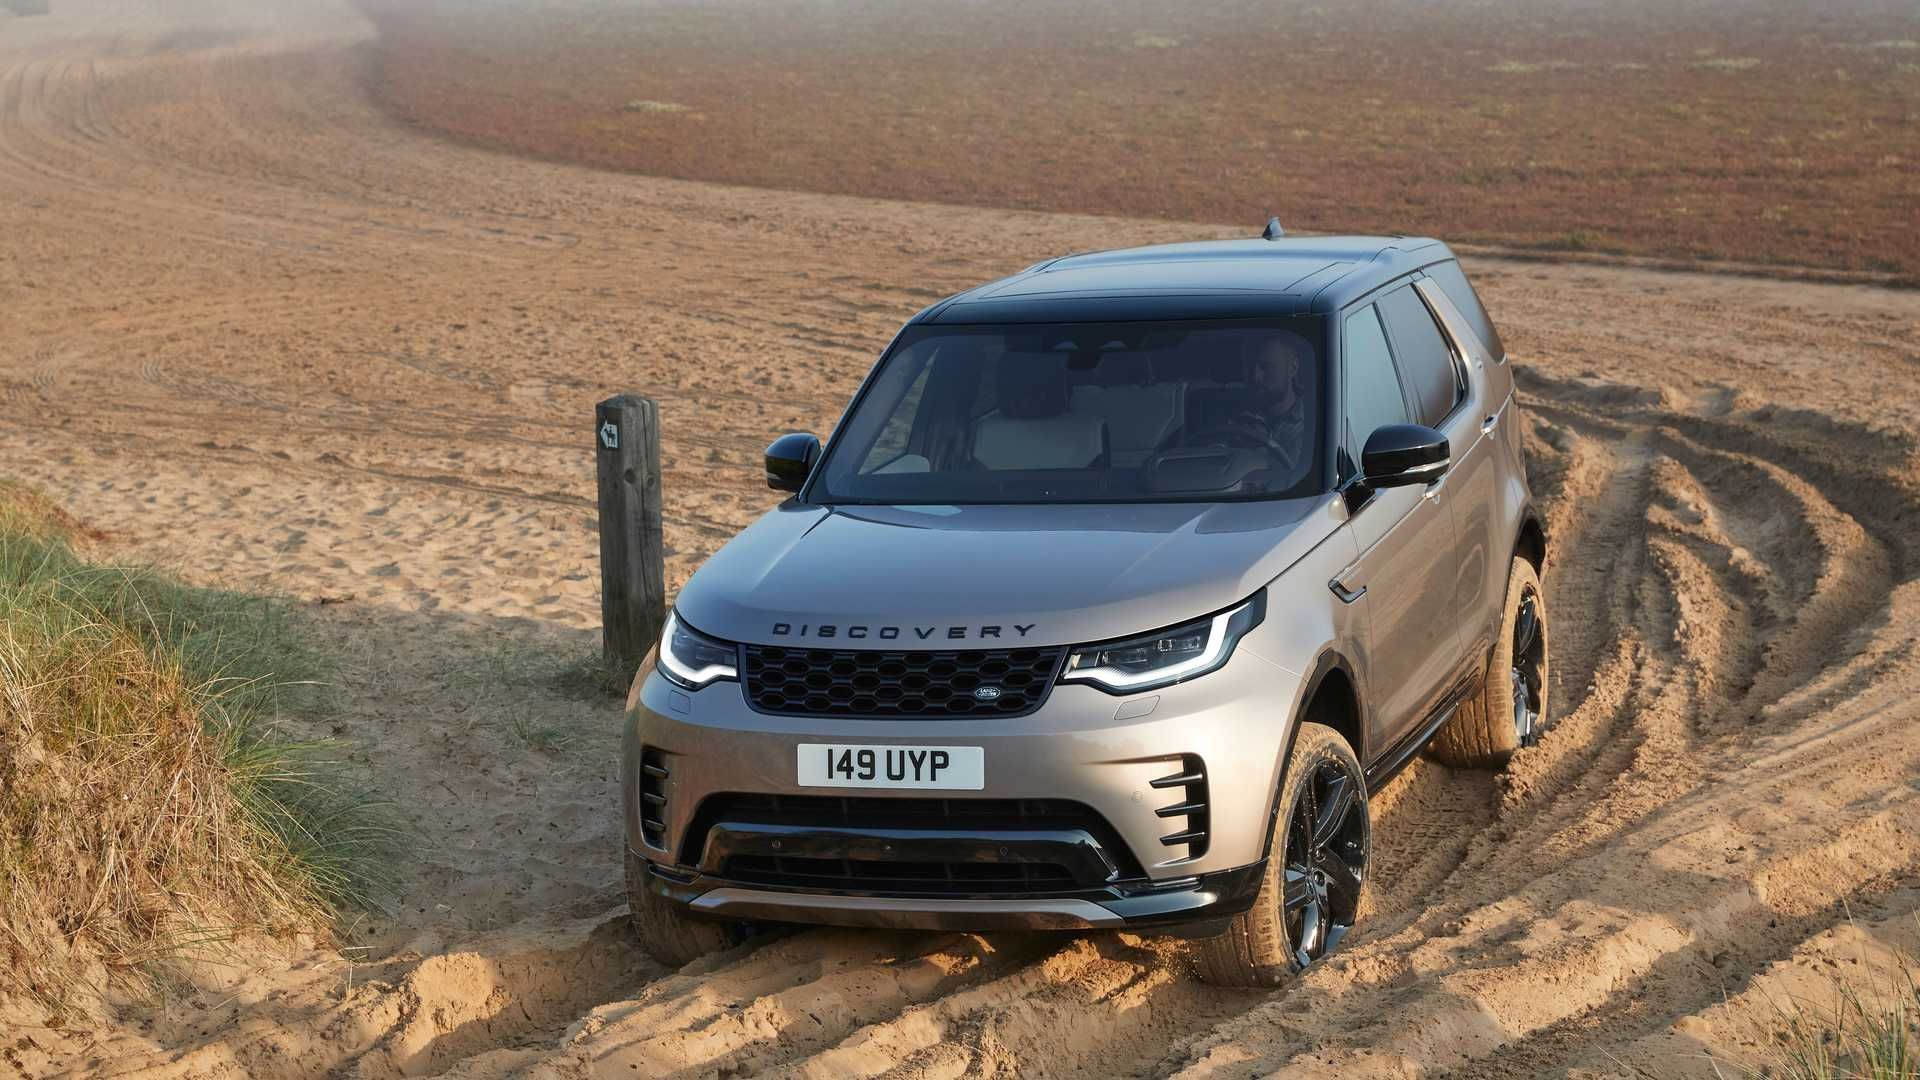 2021-Land-Rover-Discovery-32